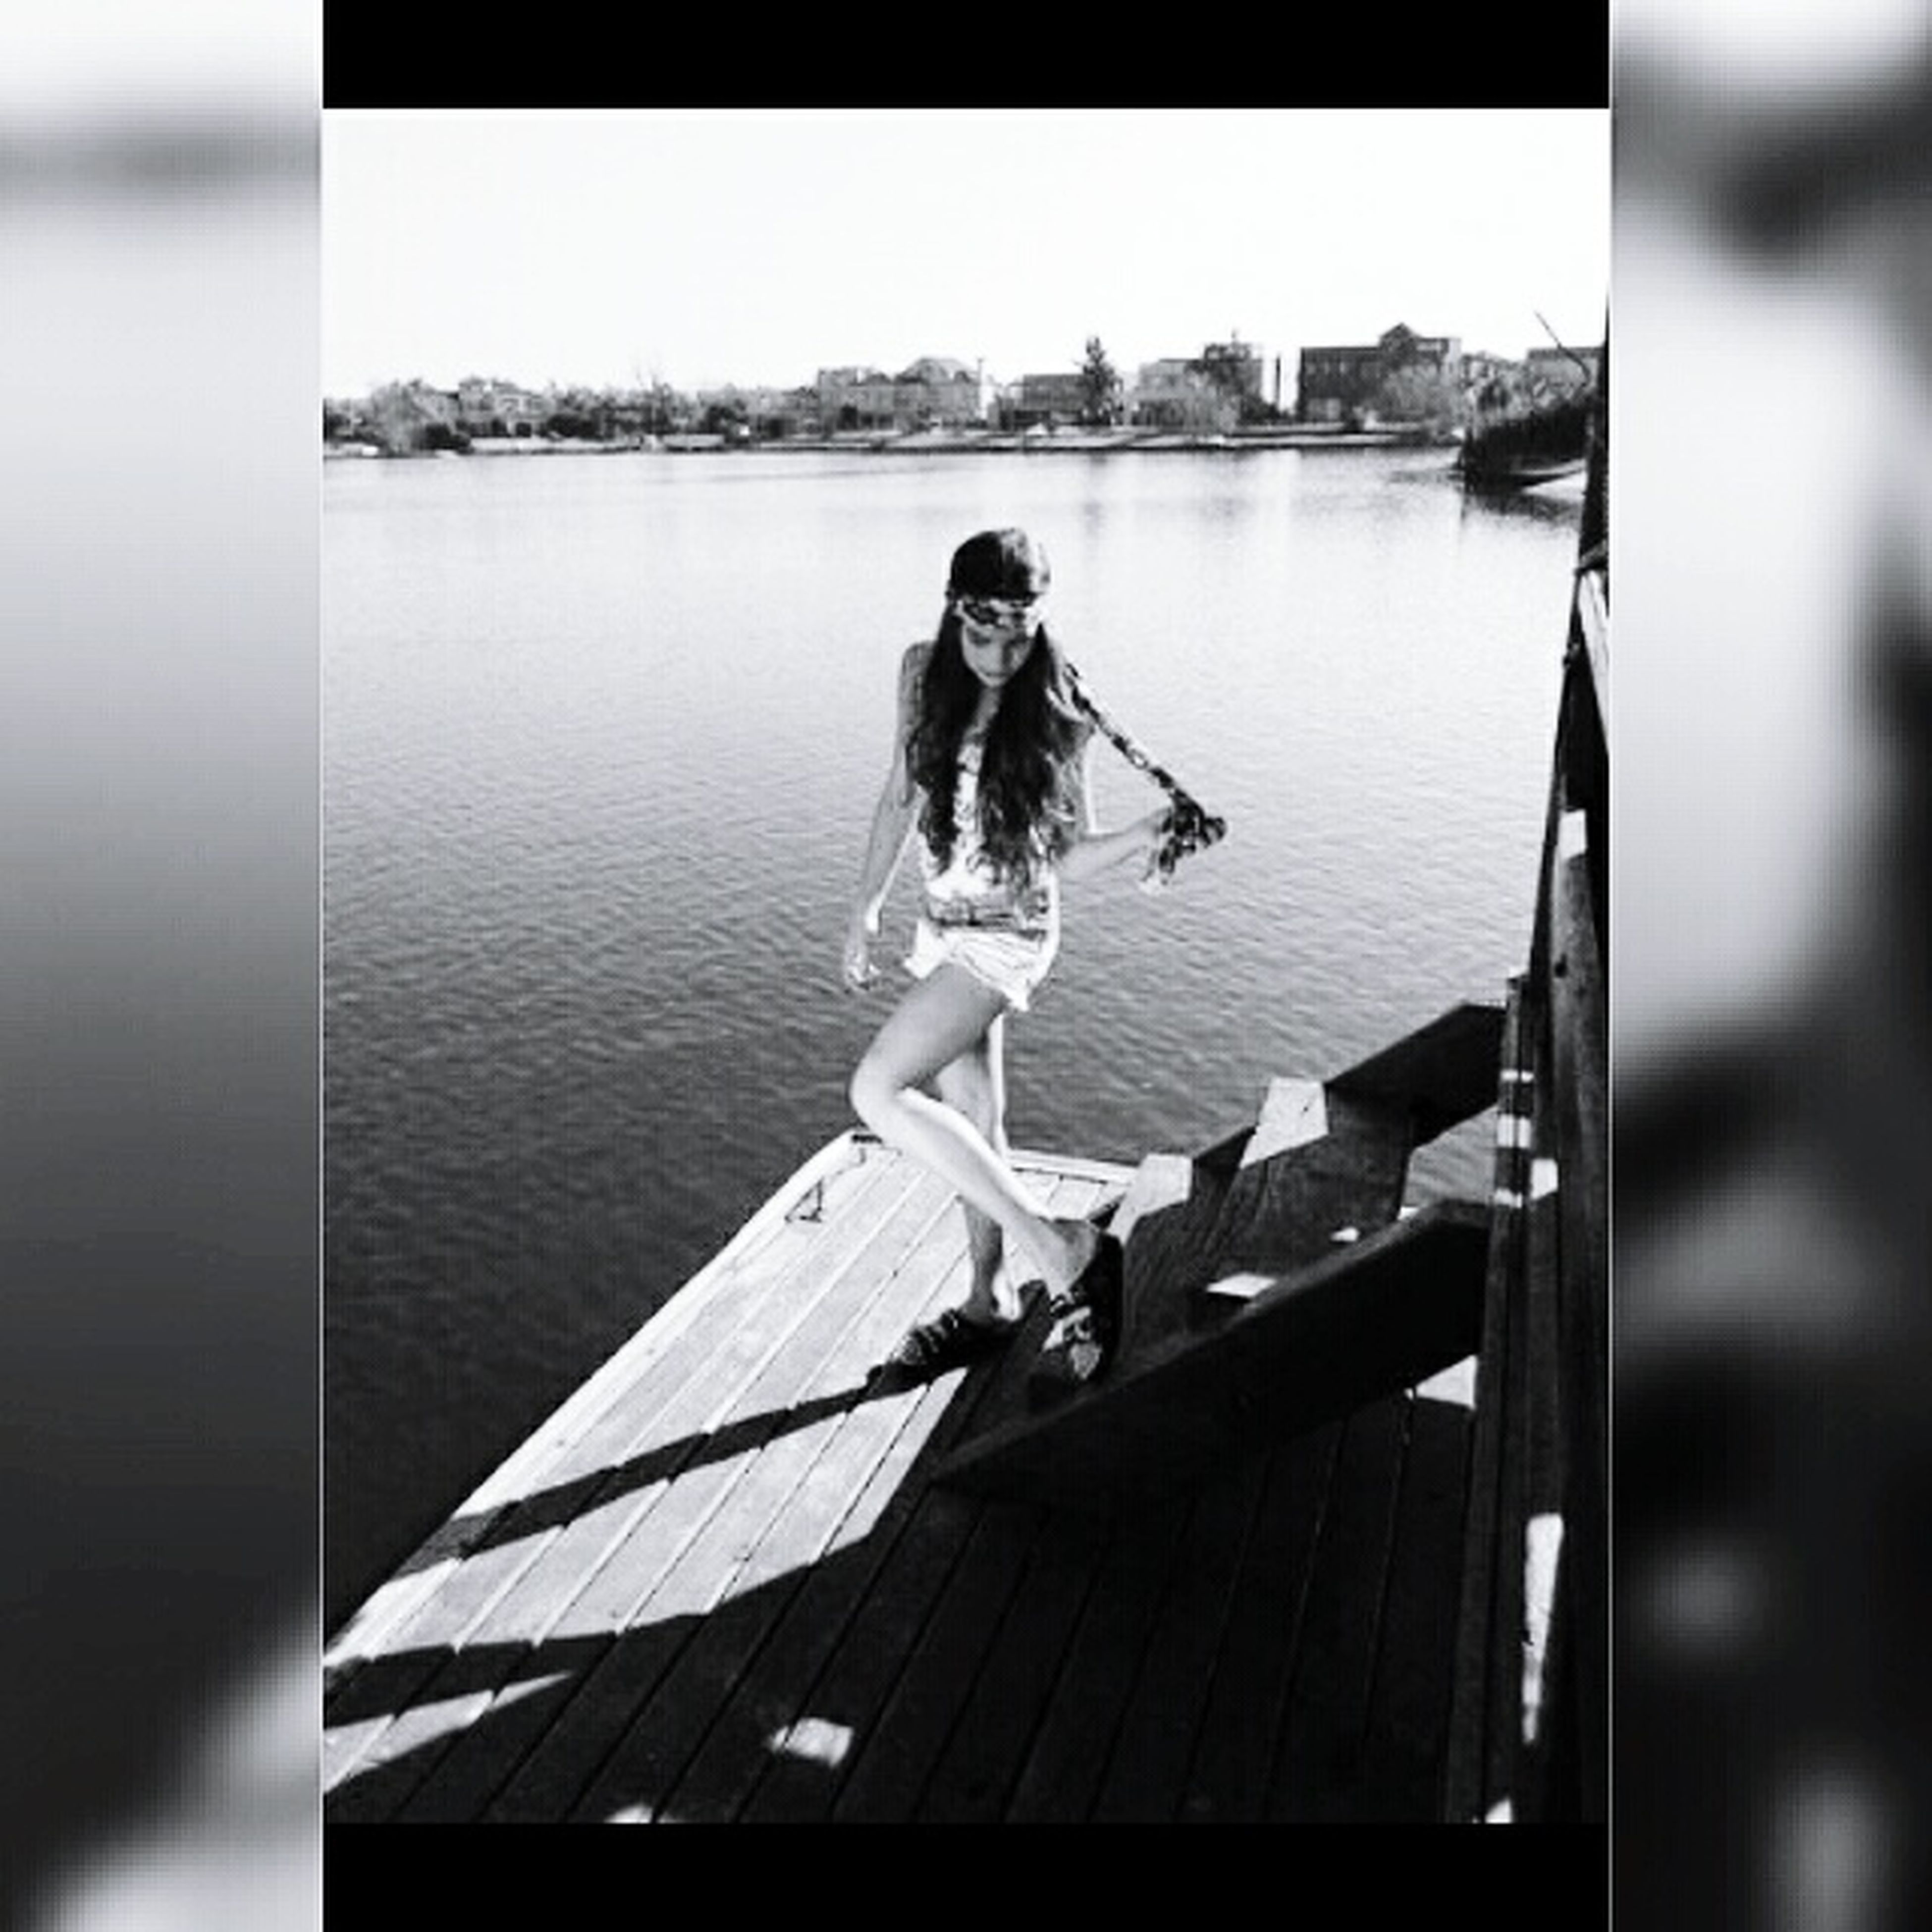 water, lifestyles, leisure activity, full length, nautical vessel, casual clothing, sitting, young adult, standing, boat, person, reflection, lake, rear view, three quarter length, holding, railing, side view